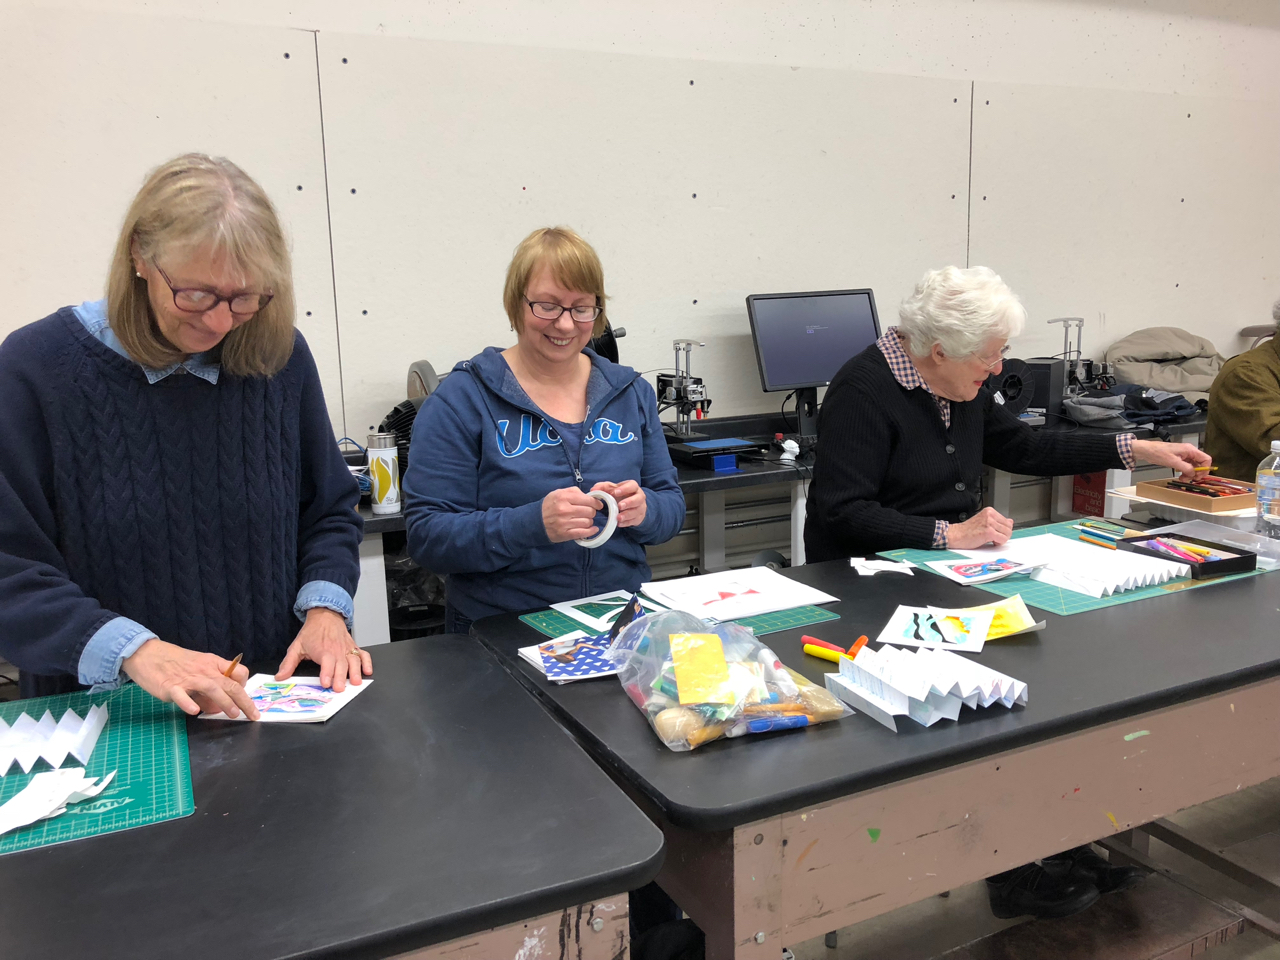 Deborah, April and Judith working on their tunnel books, Cont Ed 2018